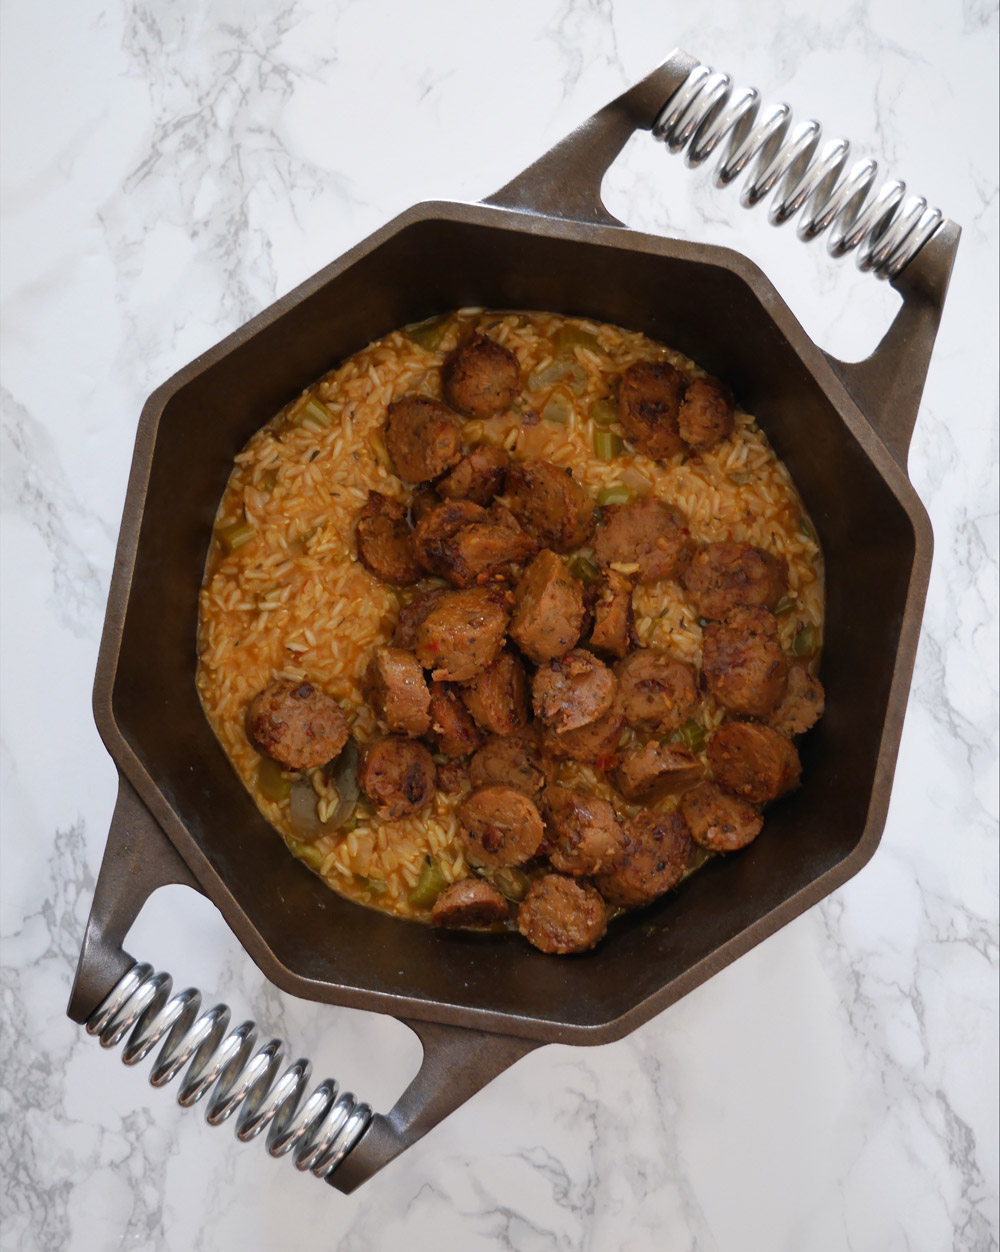 Finex Dutch Oven Vegan Cajun Jambalaya